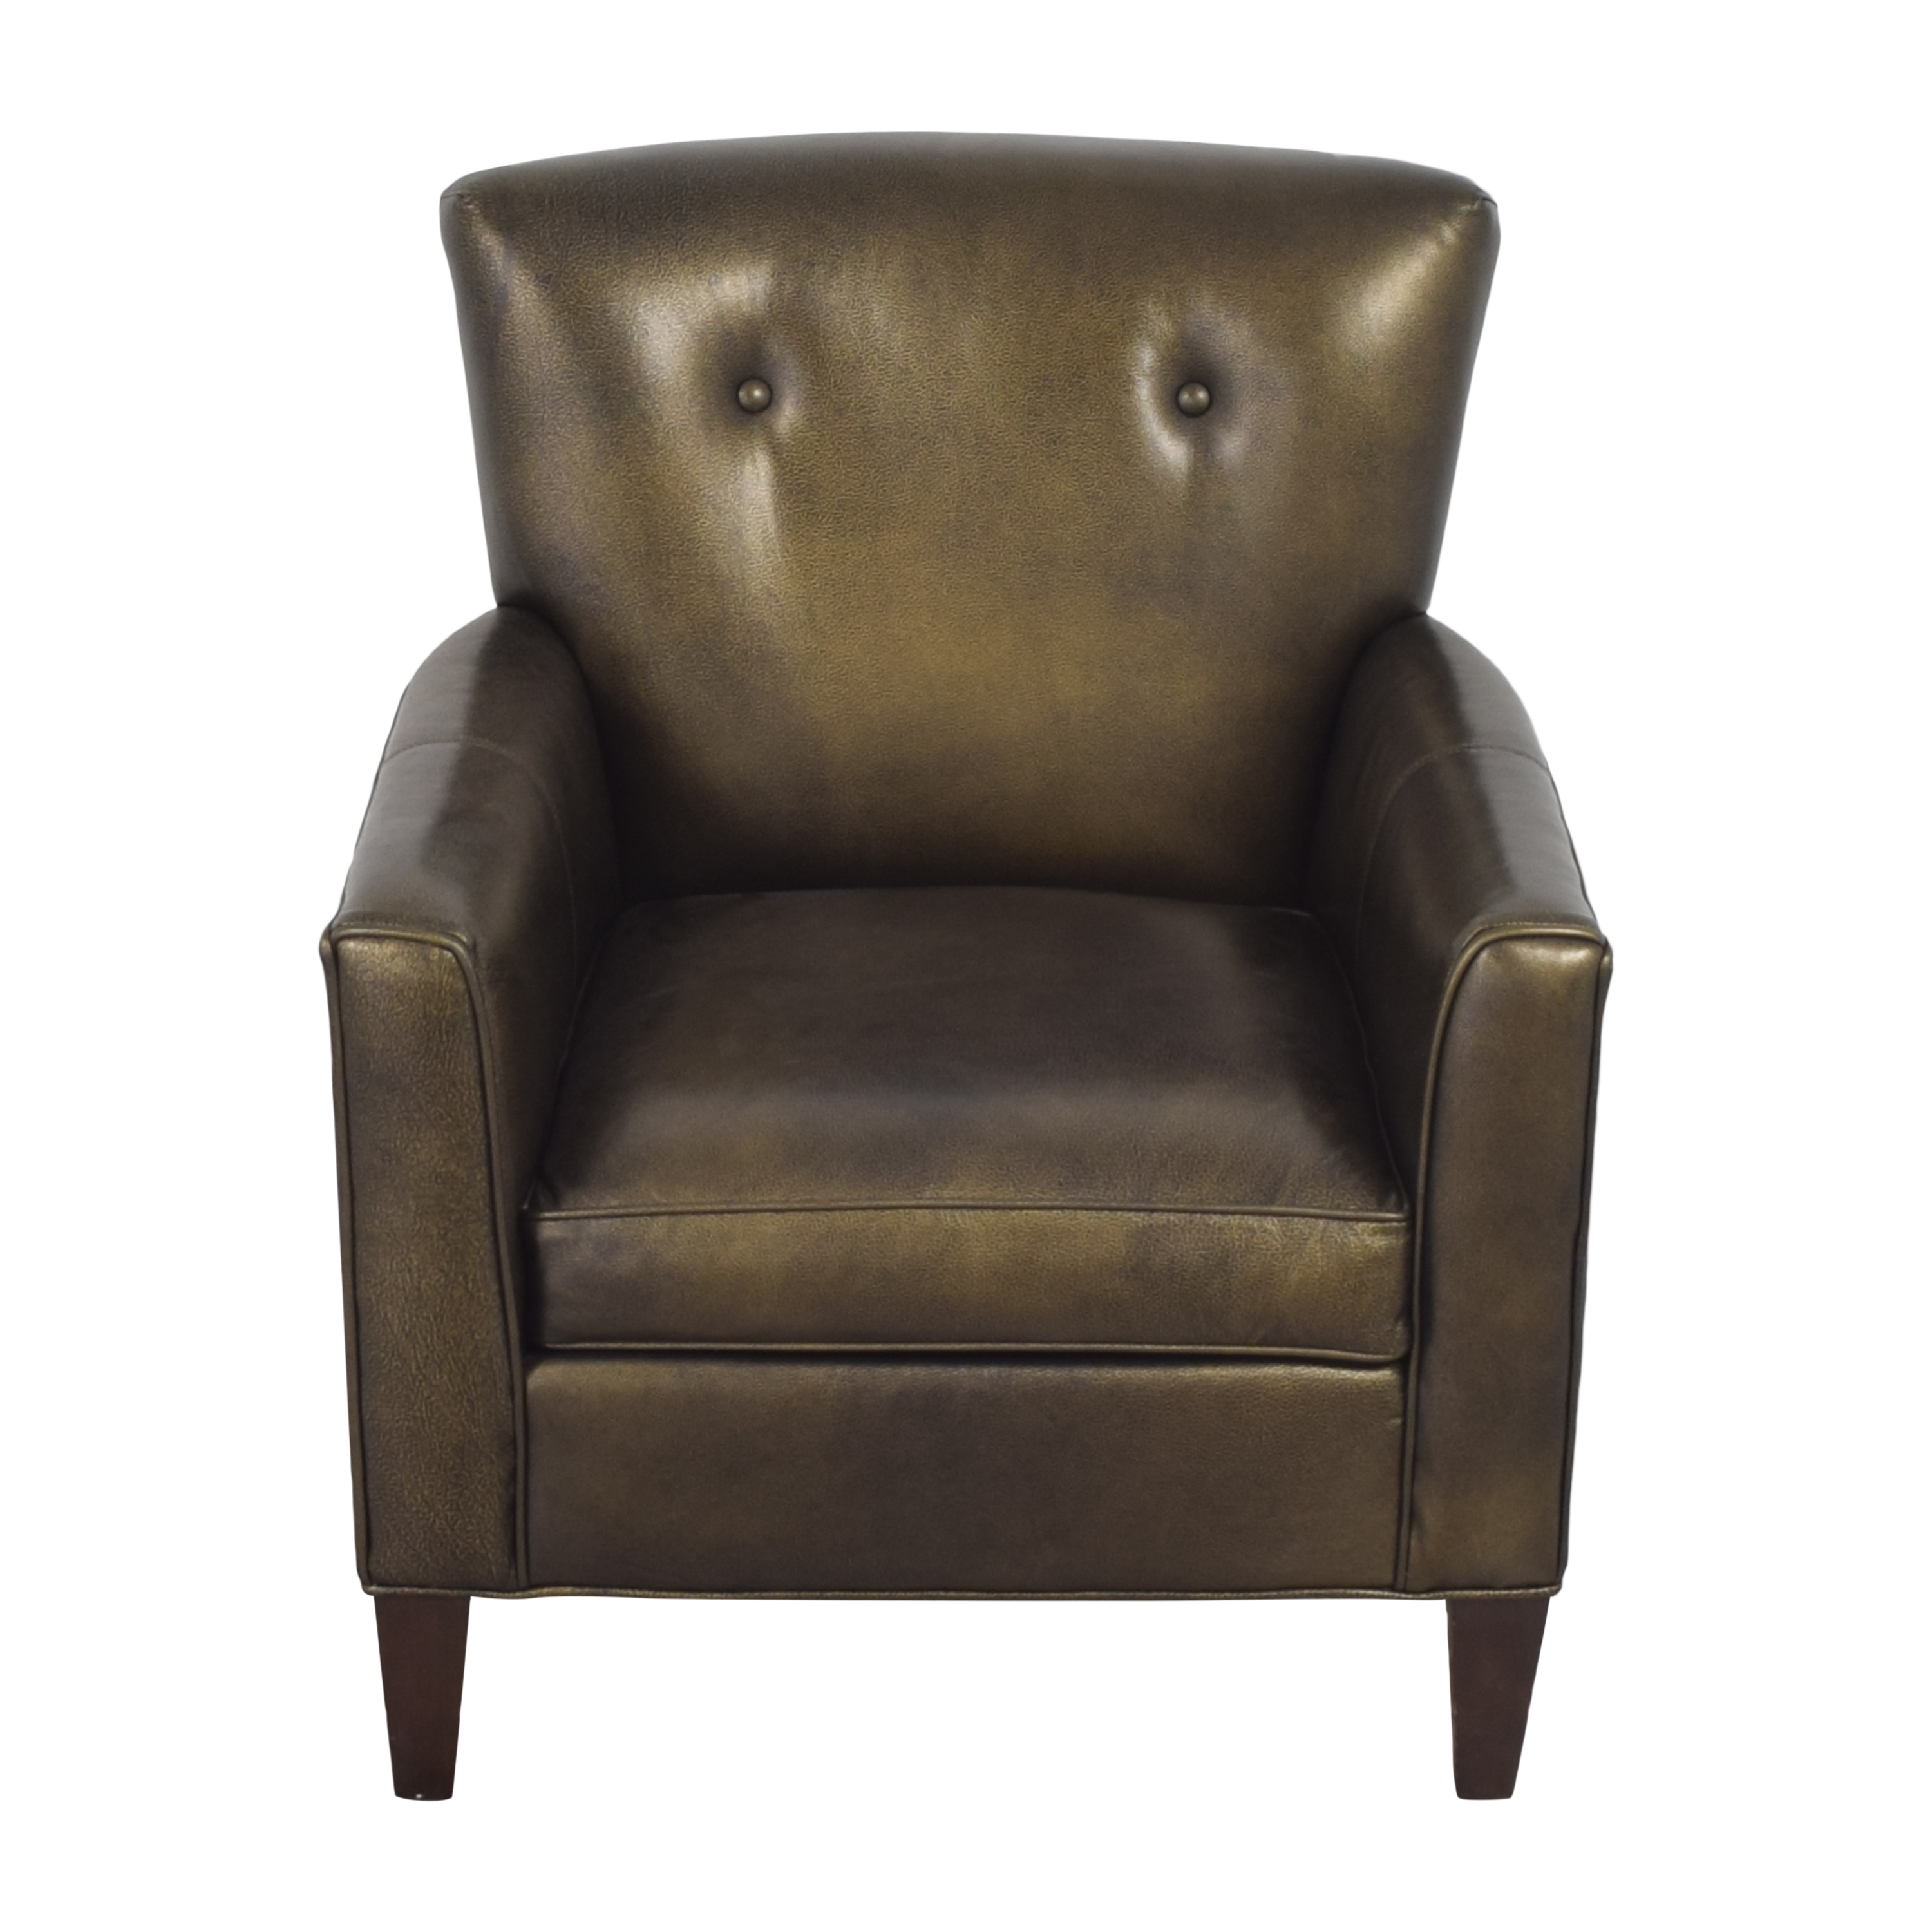 buy Ethan Allen Tufted Wingback Chair Ethan Allen Chairs